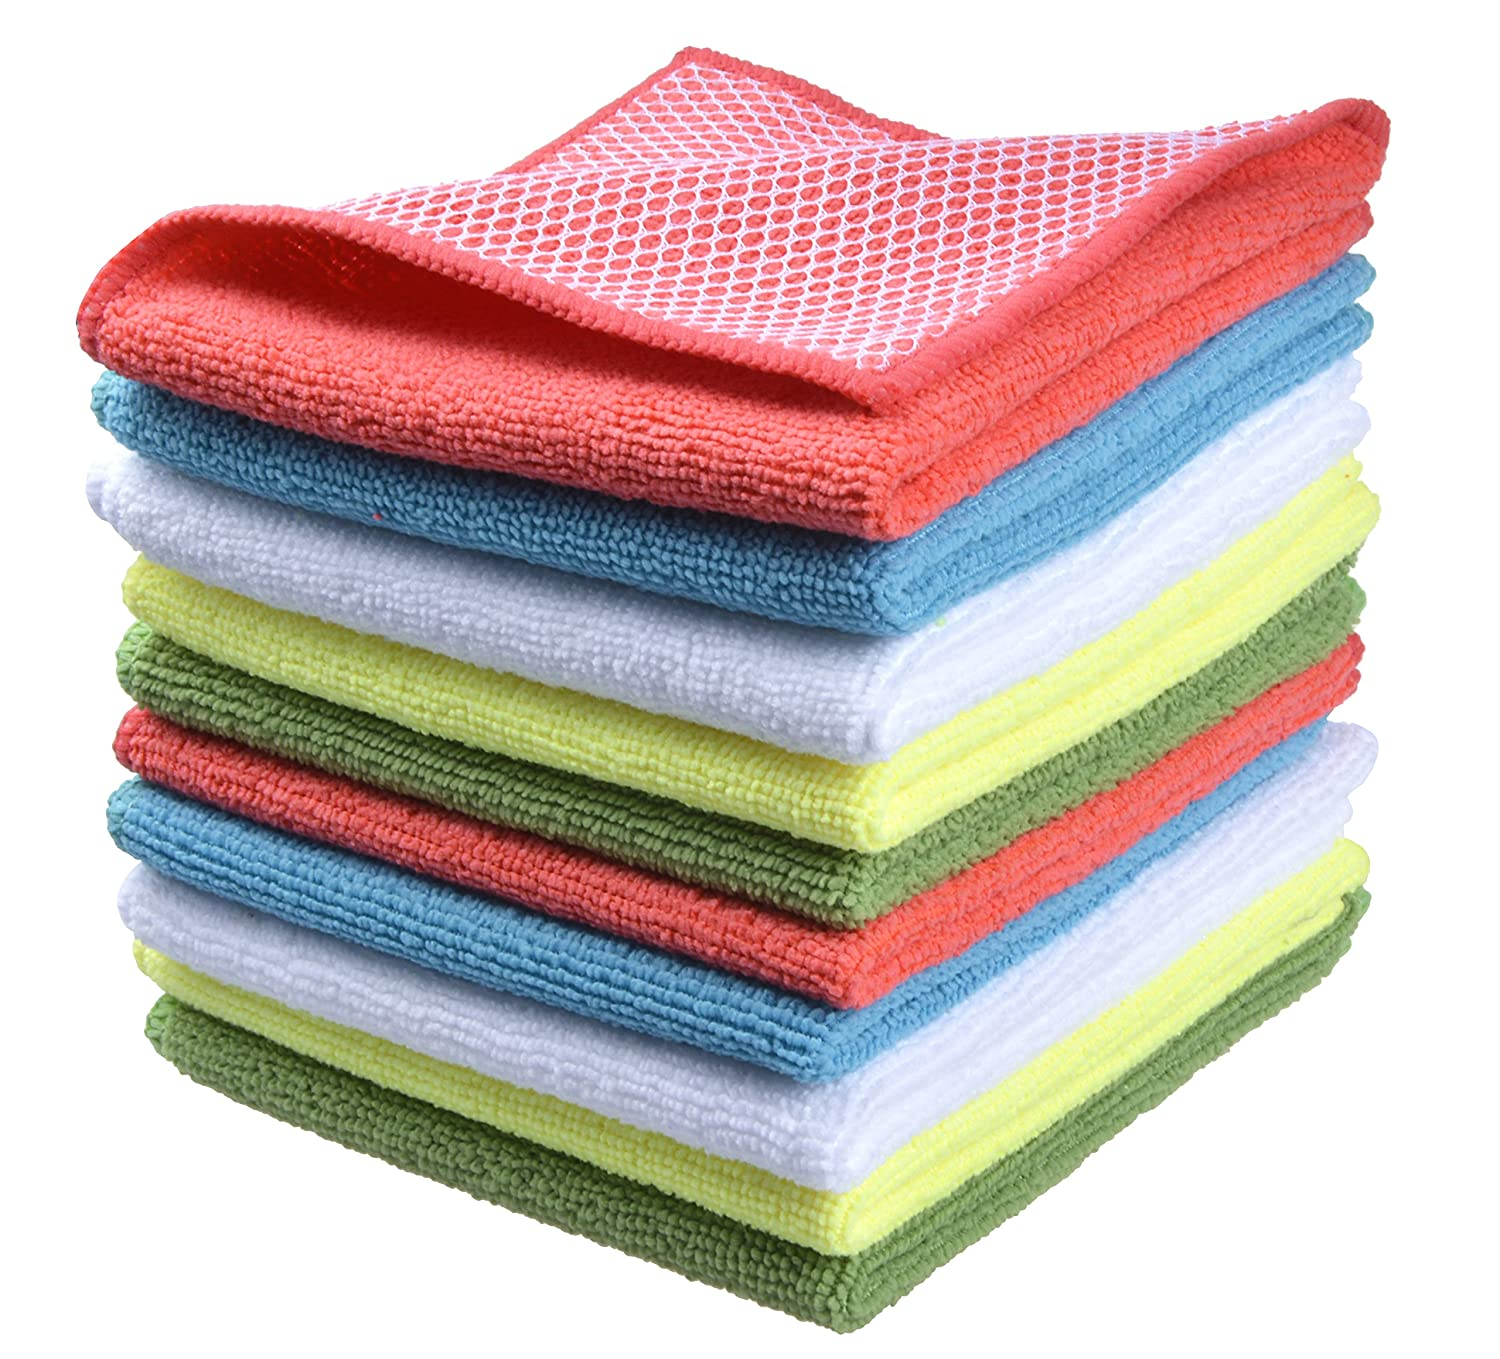 Best Microfiber Towels For Car